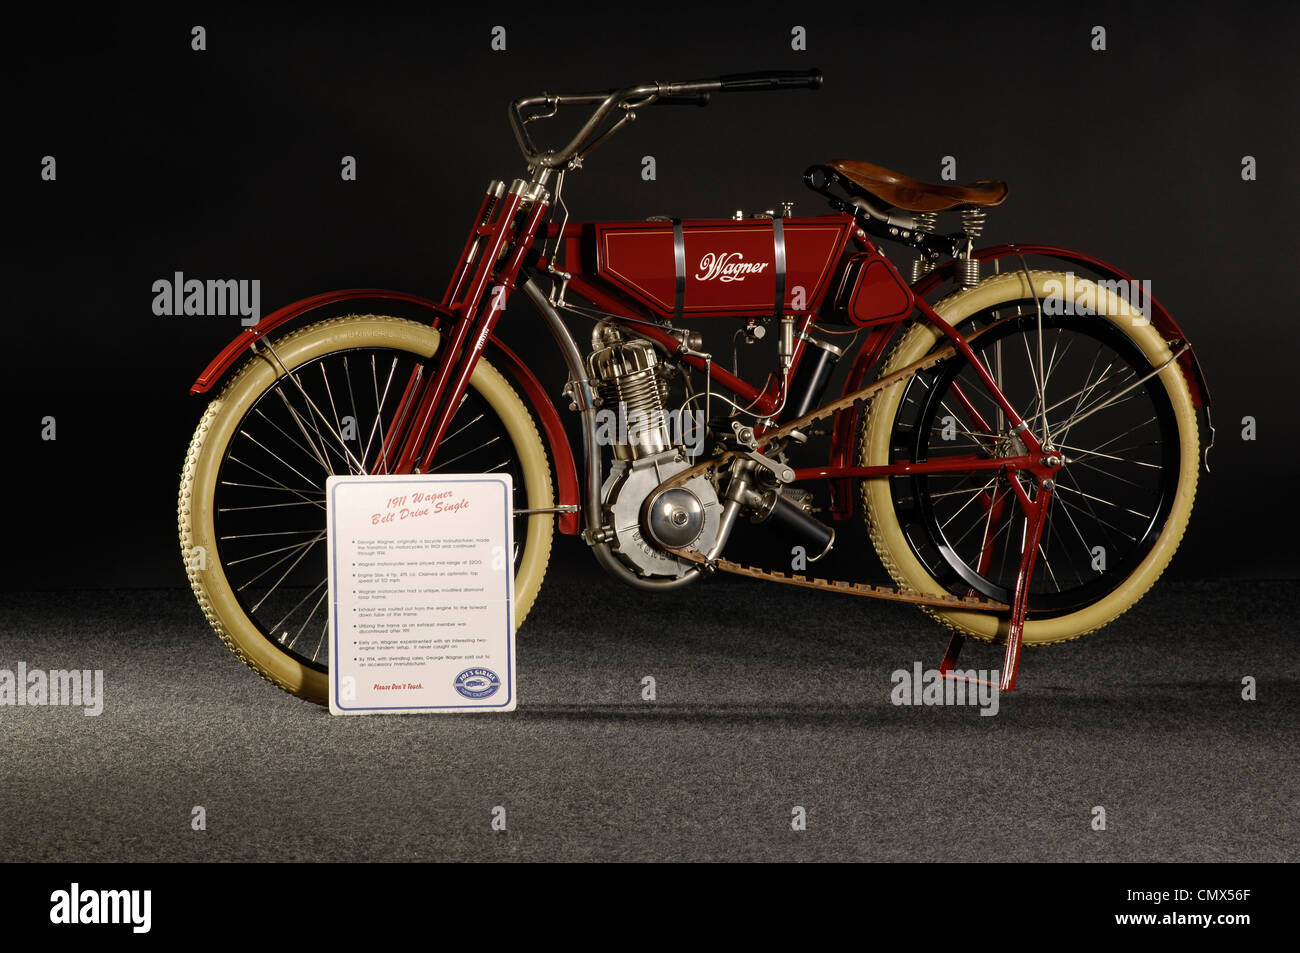 1911 Wagner Belt drive single - Stock Image